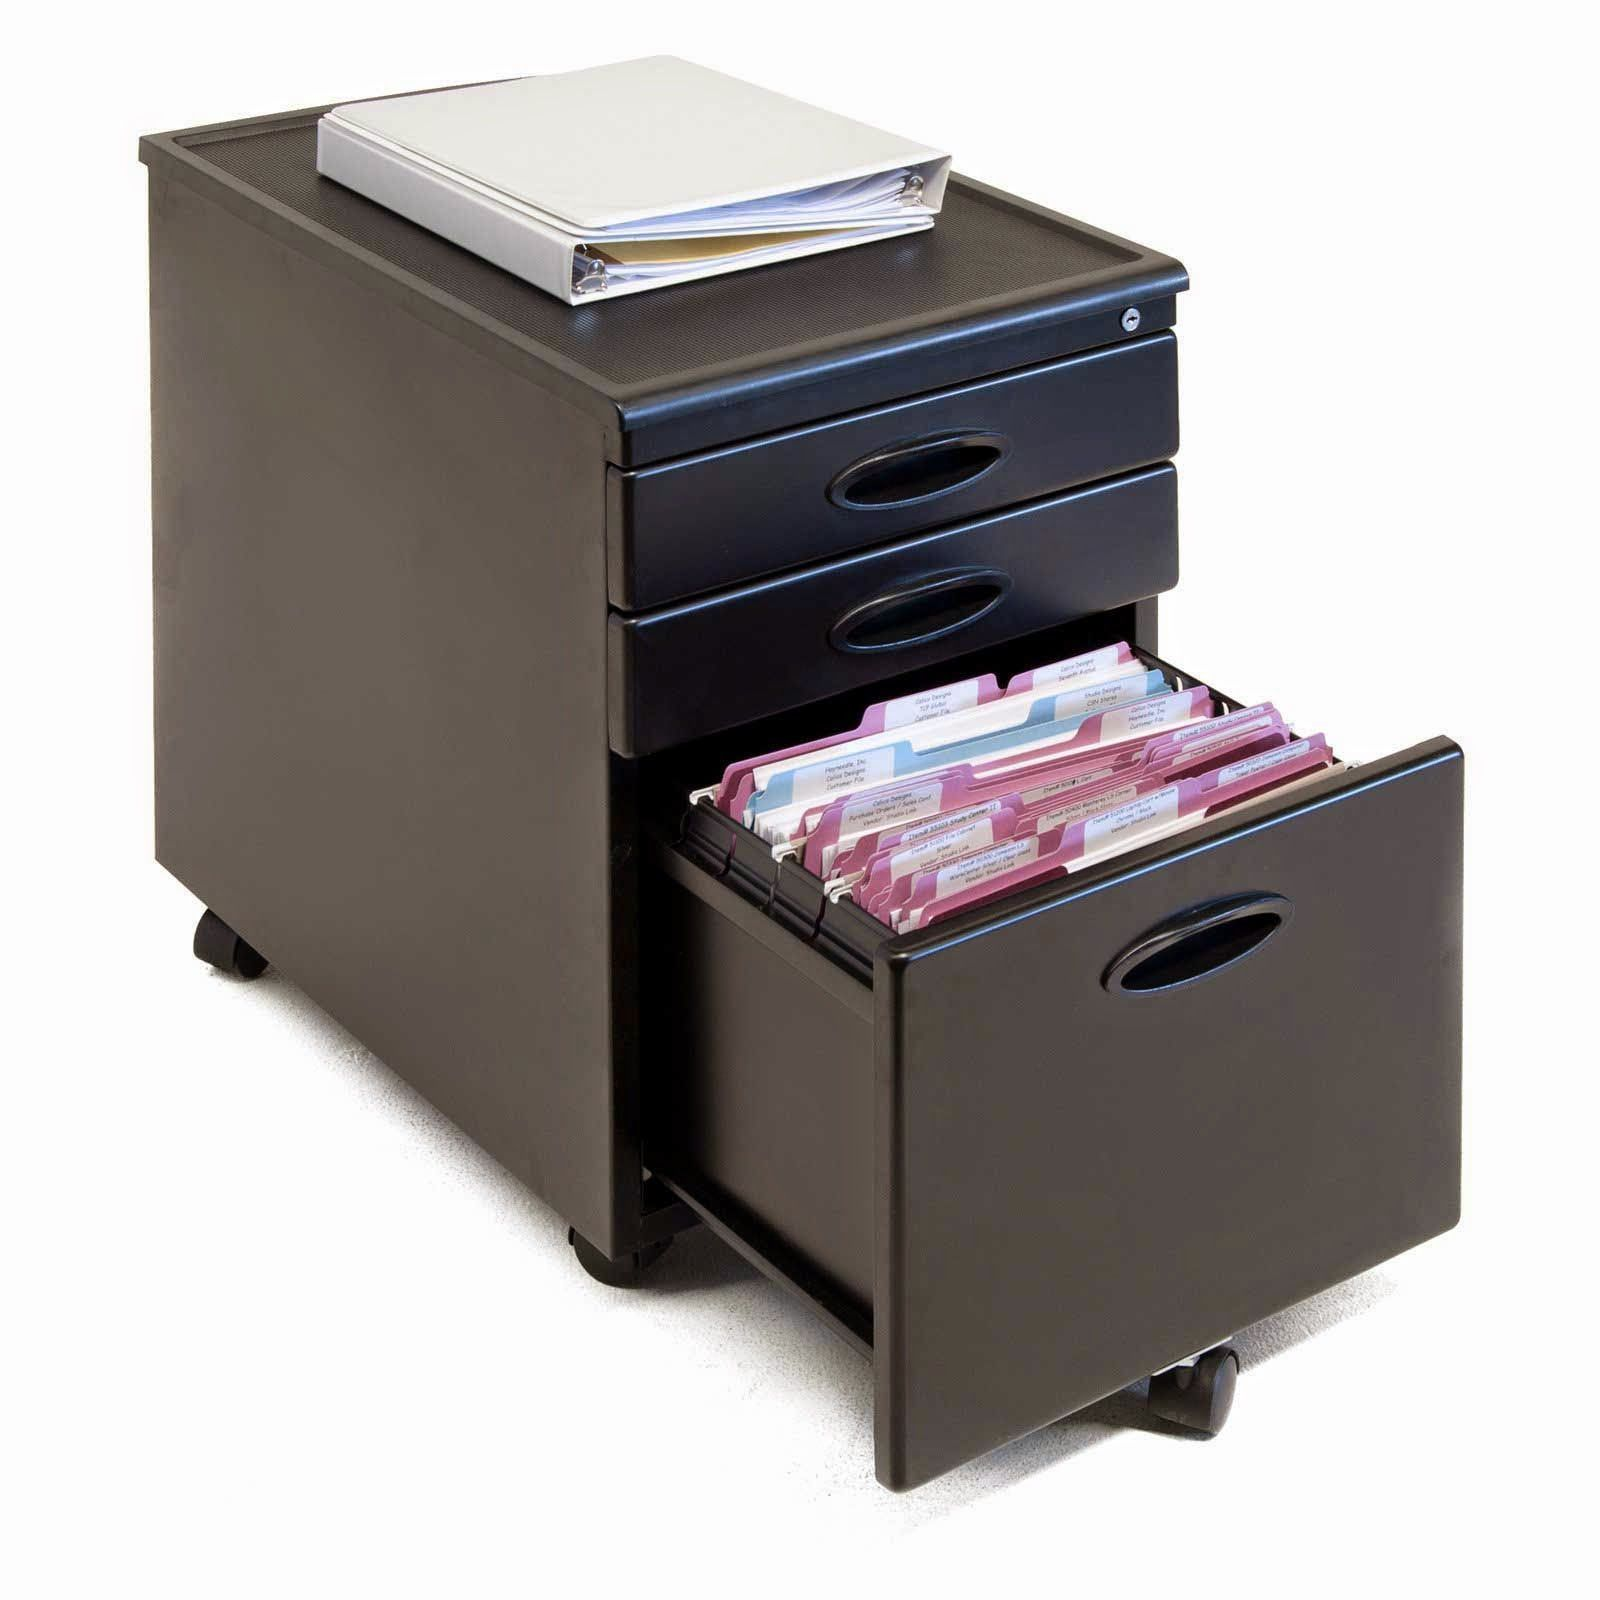 The Amazing Ikea 3 Drawers Mobile Filing Cabinet Image Metal Filing Cabinet Filing Cabinet Drawer Dividers